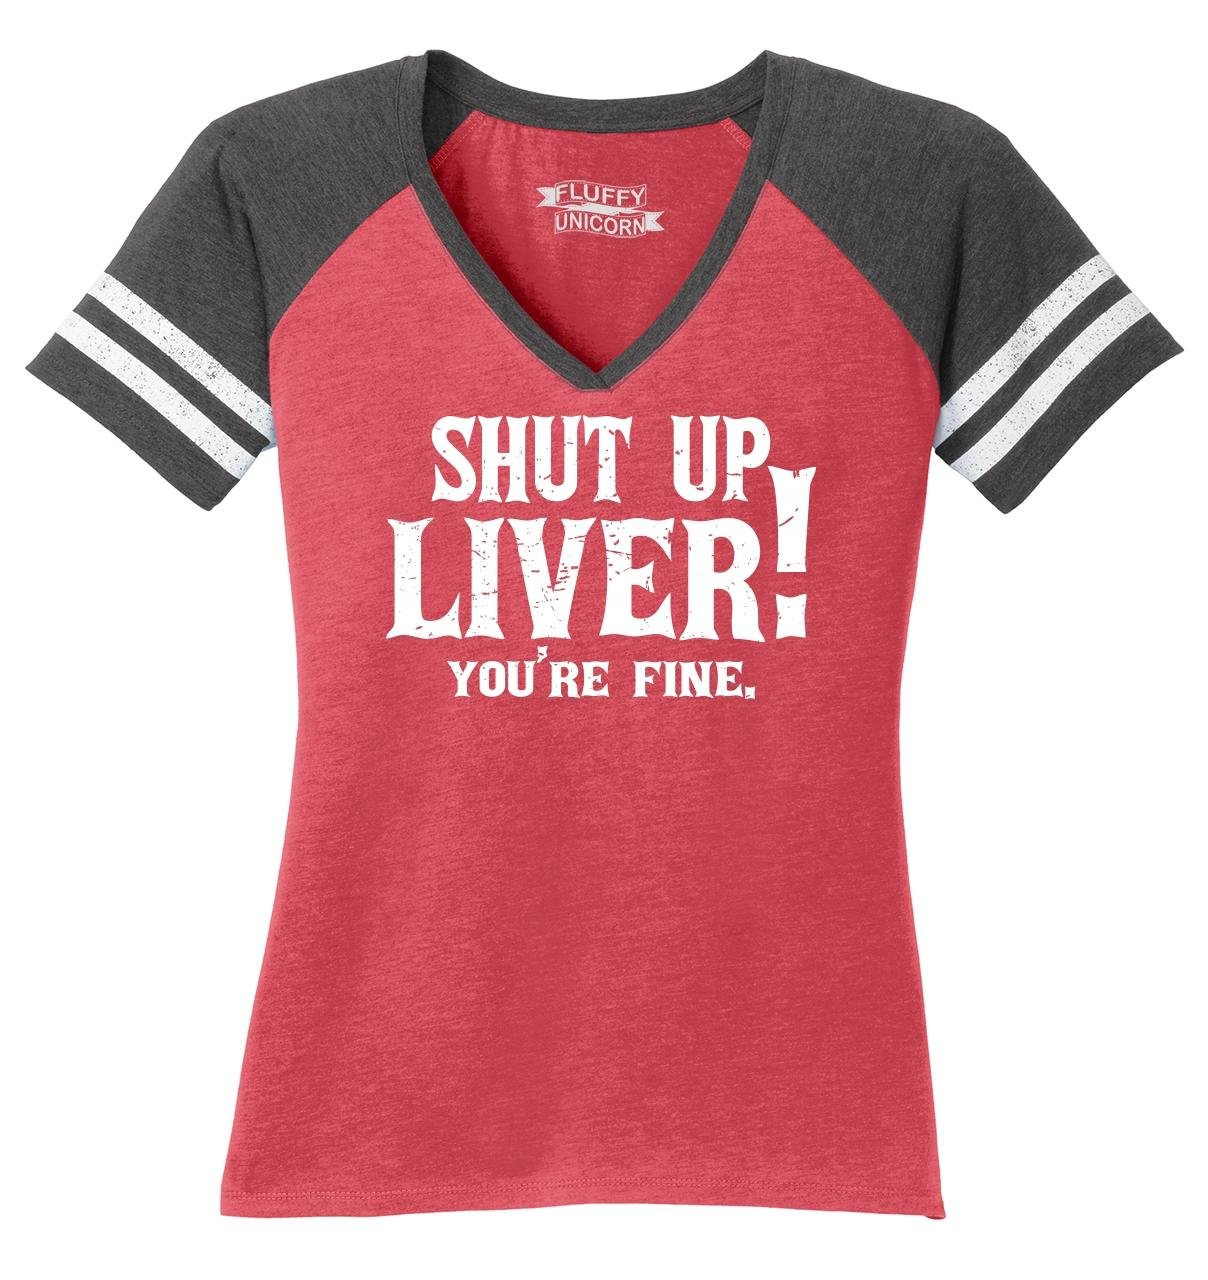 Comical Shirt Ladies Game V-Neck Tee Shut up Liver You're Fine Heathered Red/Heathered Charcoal L